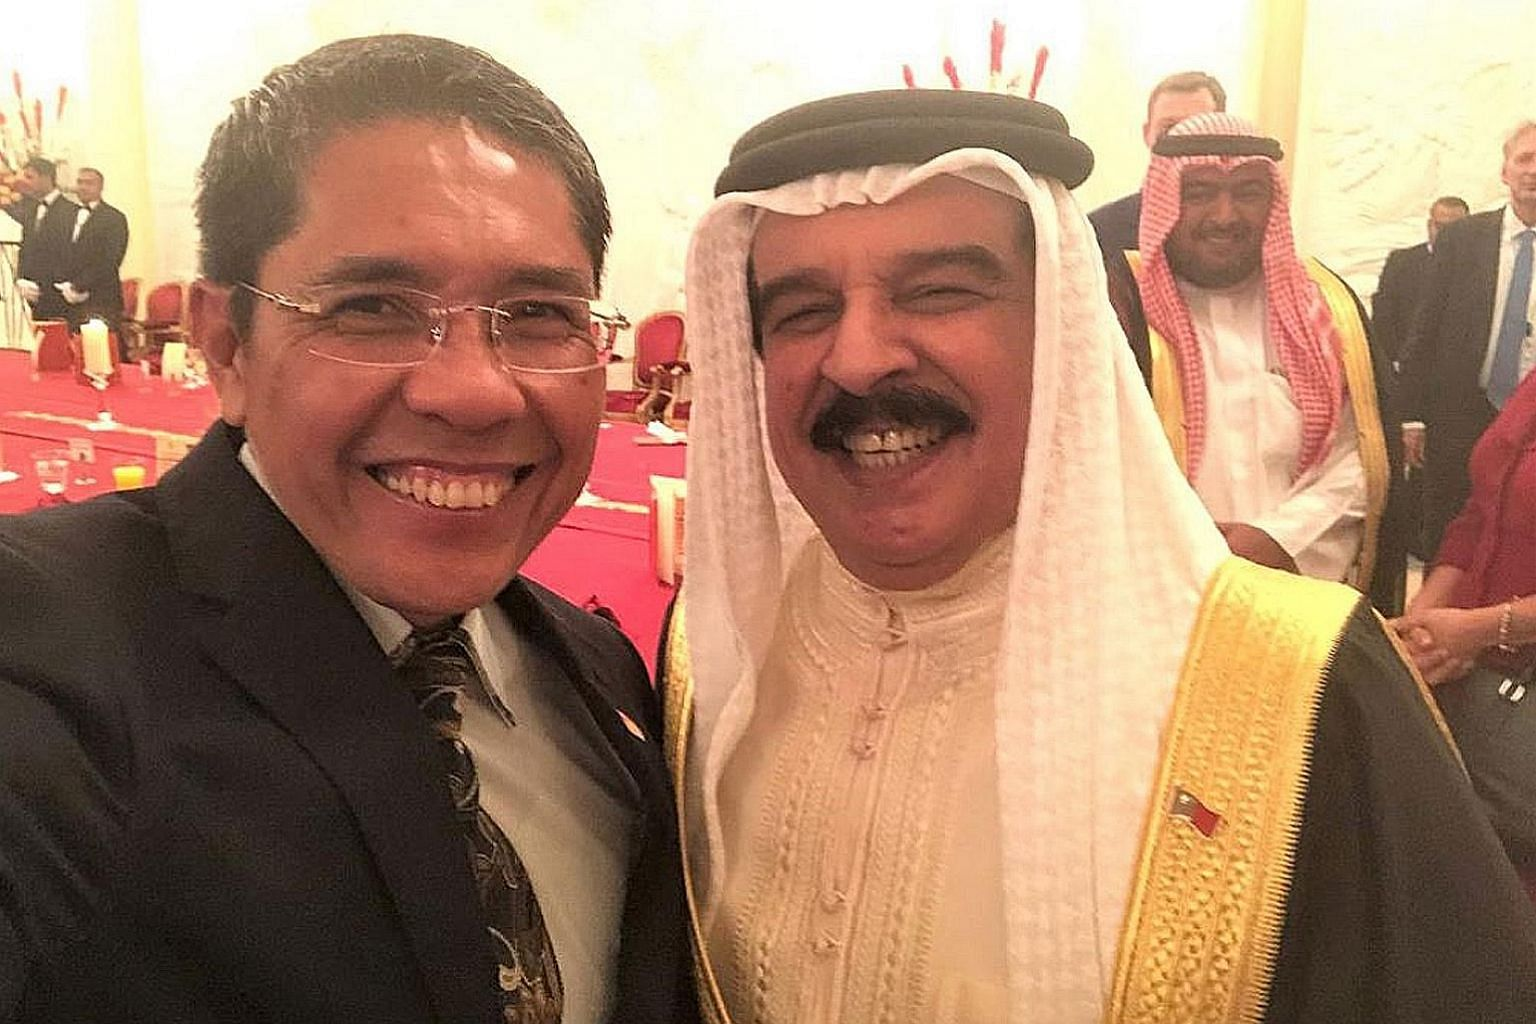 Senior Minister of State for Defence and Foreign Affairs Maliki Osman with Bahrain's King Hamad bin Isa Al Khalifa.